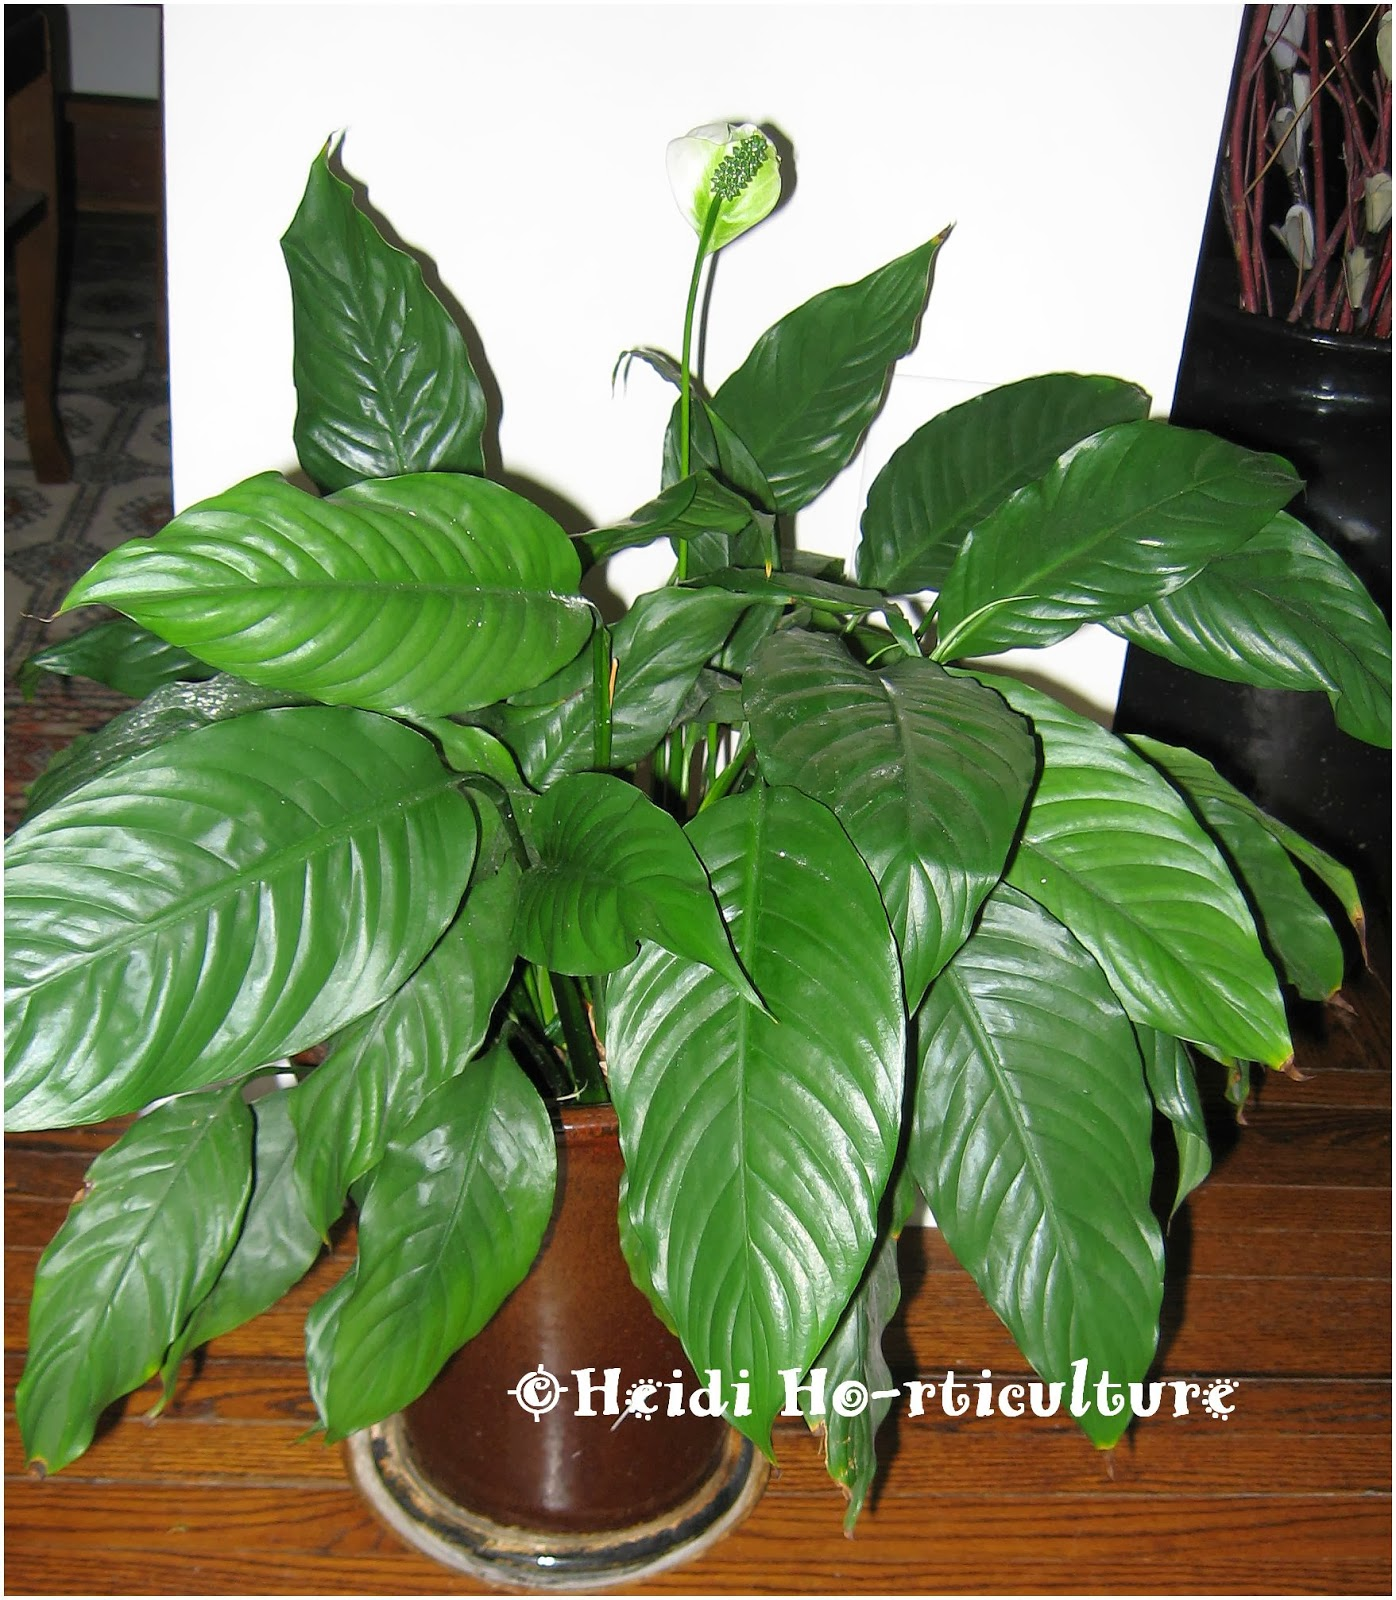 Heidi horticulture repotting peace lily house plant repotting peace lily house plant izmirmasajfo